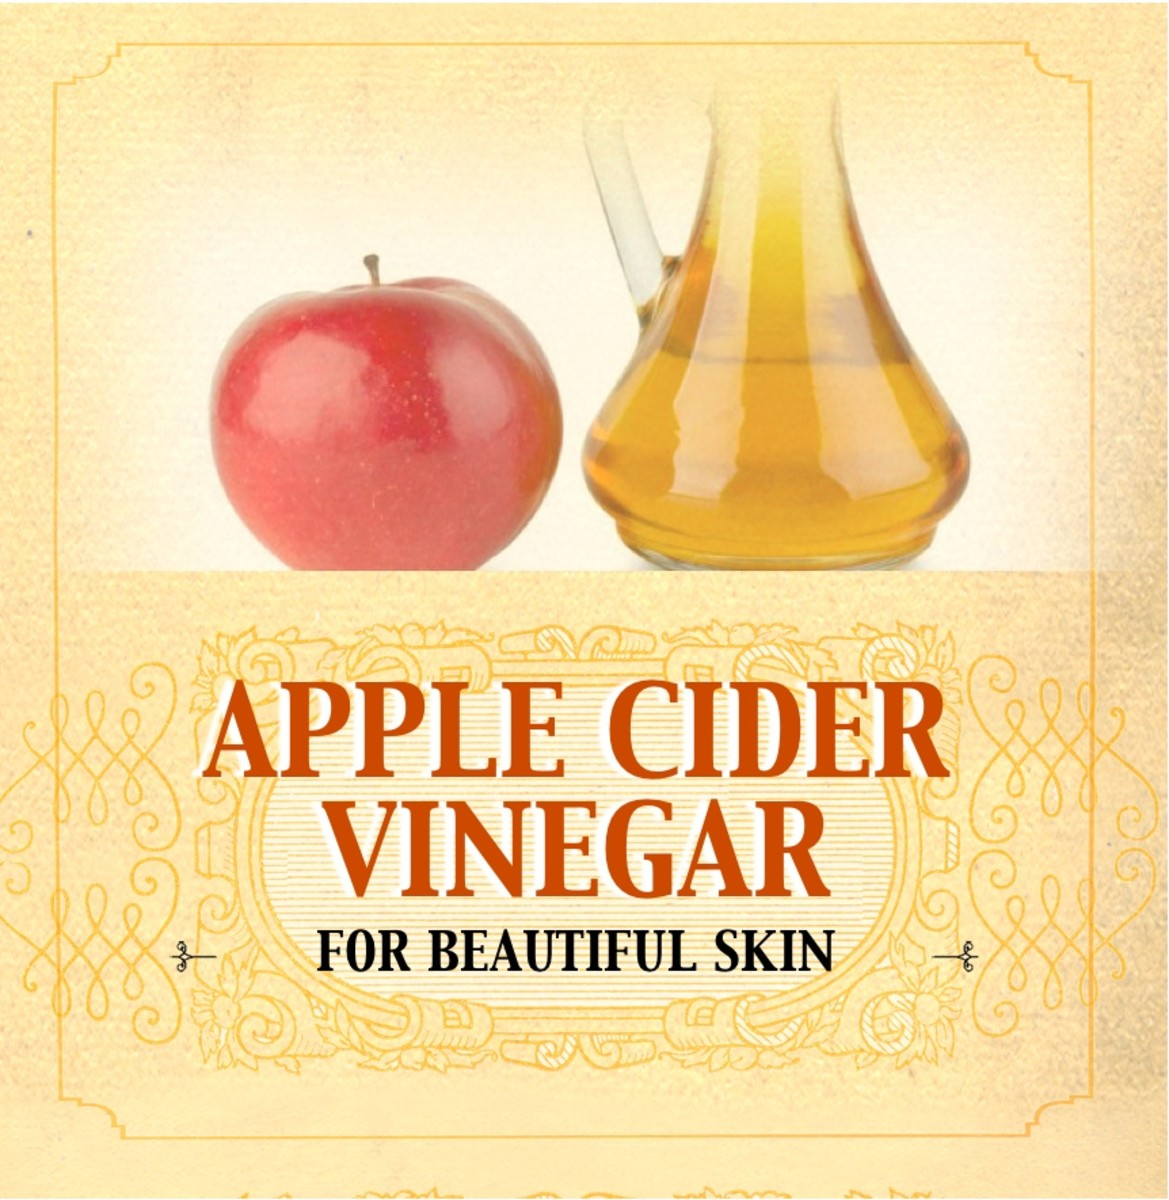 Beautiful Skin With Apple Cider Vinegar